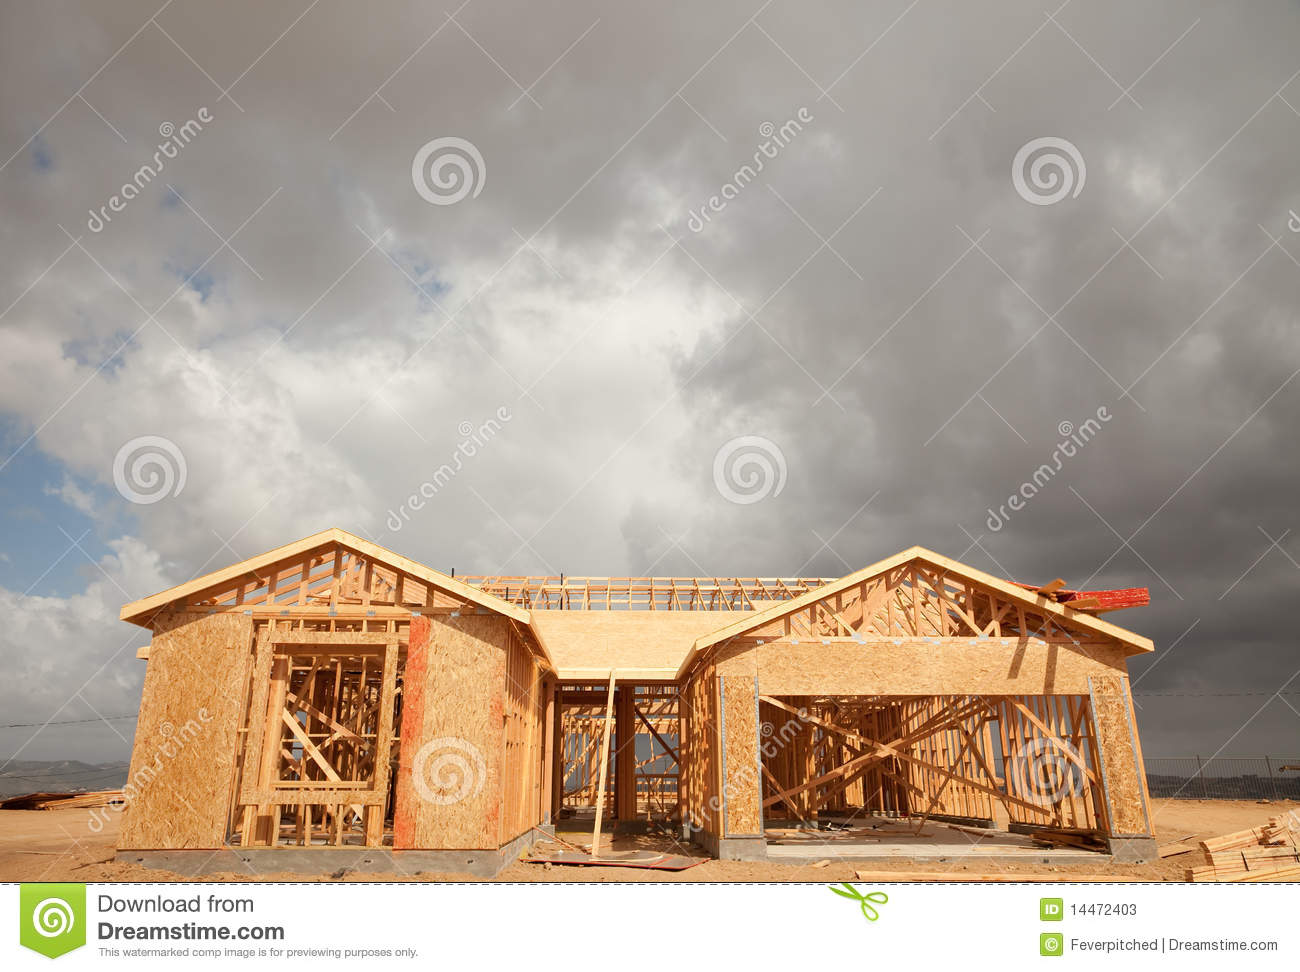 Abstract Home Construction Site and Ominous Clouds